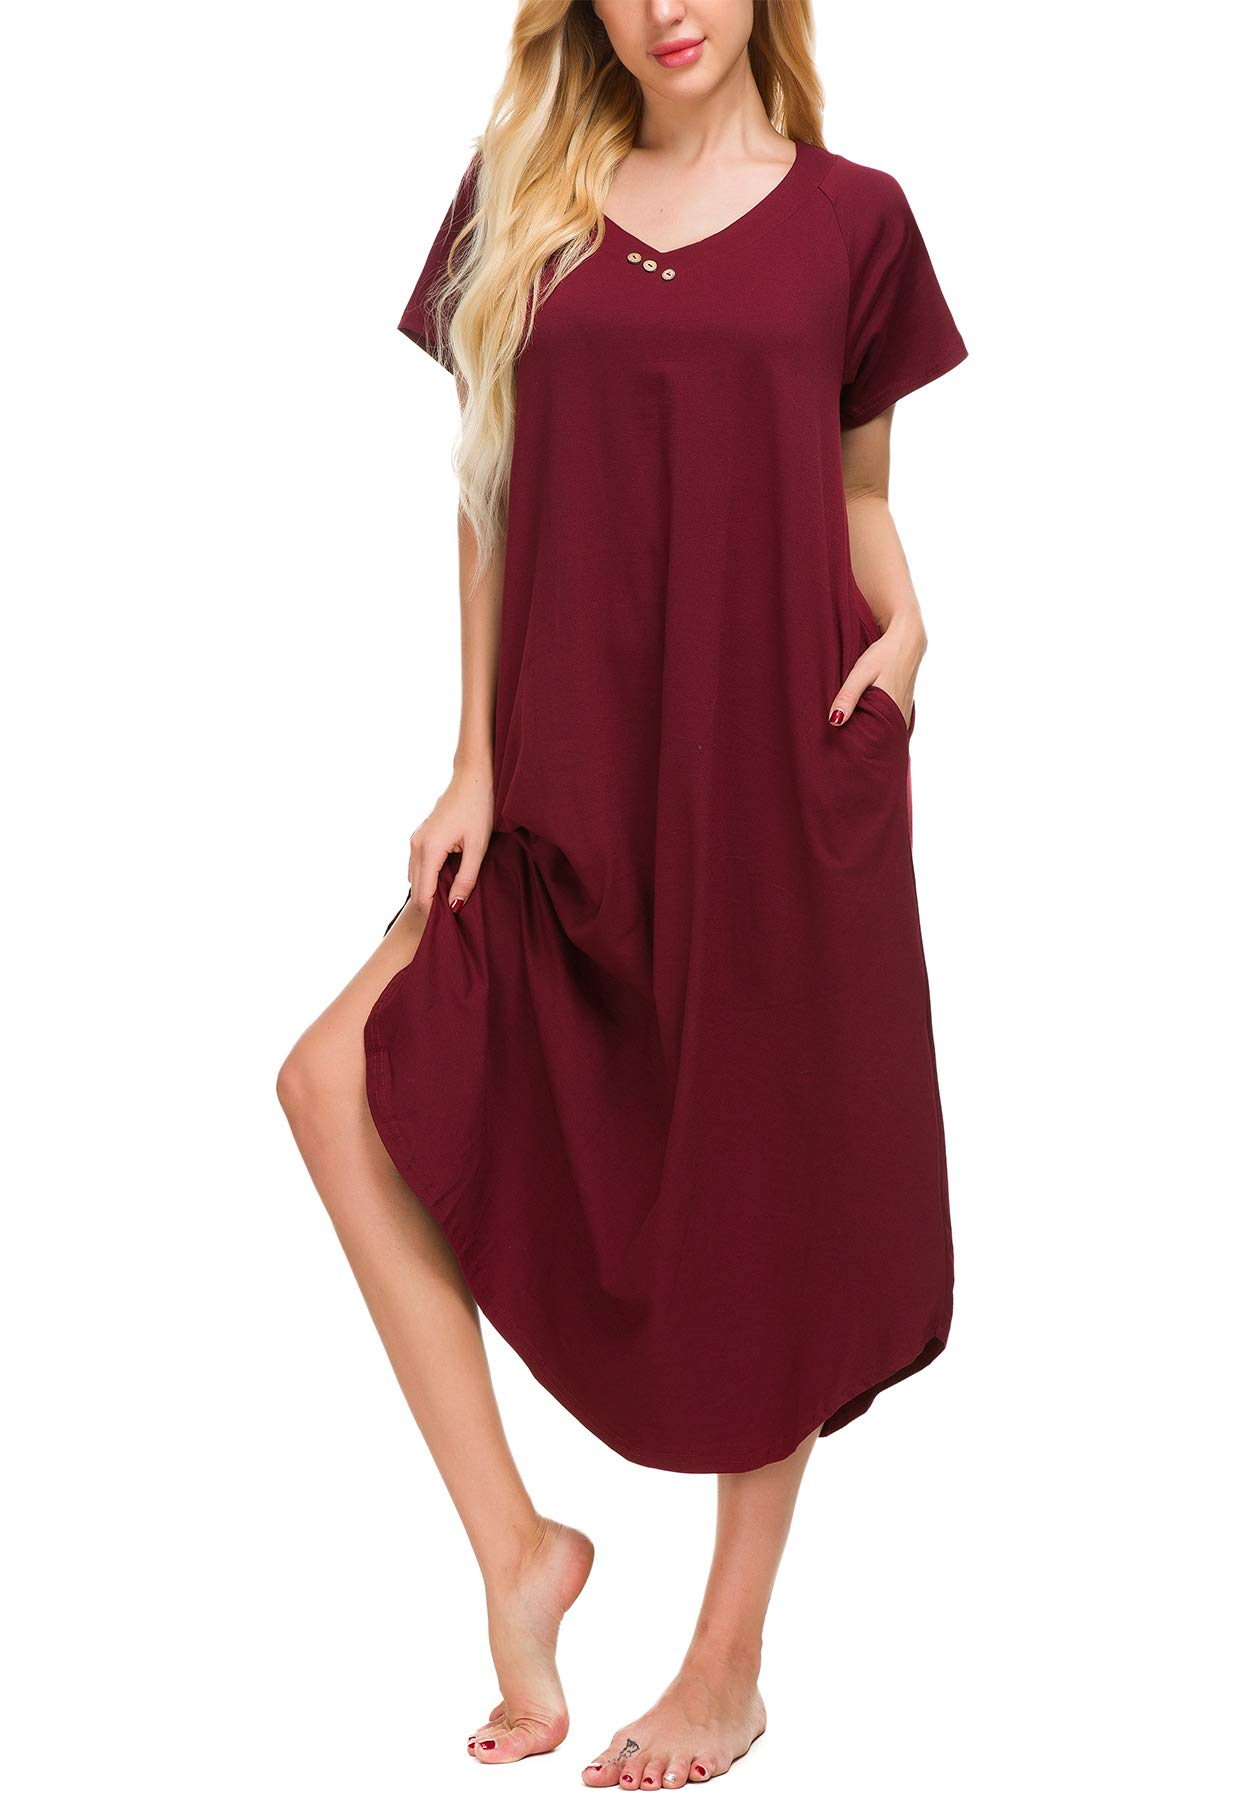 Yozly Loungewear Womens Cotton Knit Short Sleeve Long Nightgown with Pockets S-XXL (Wine Red, M)